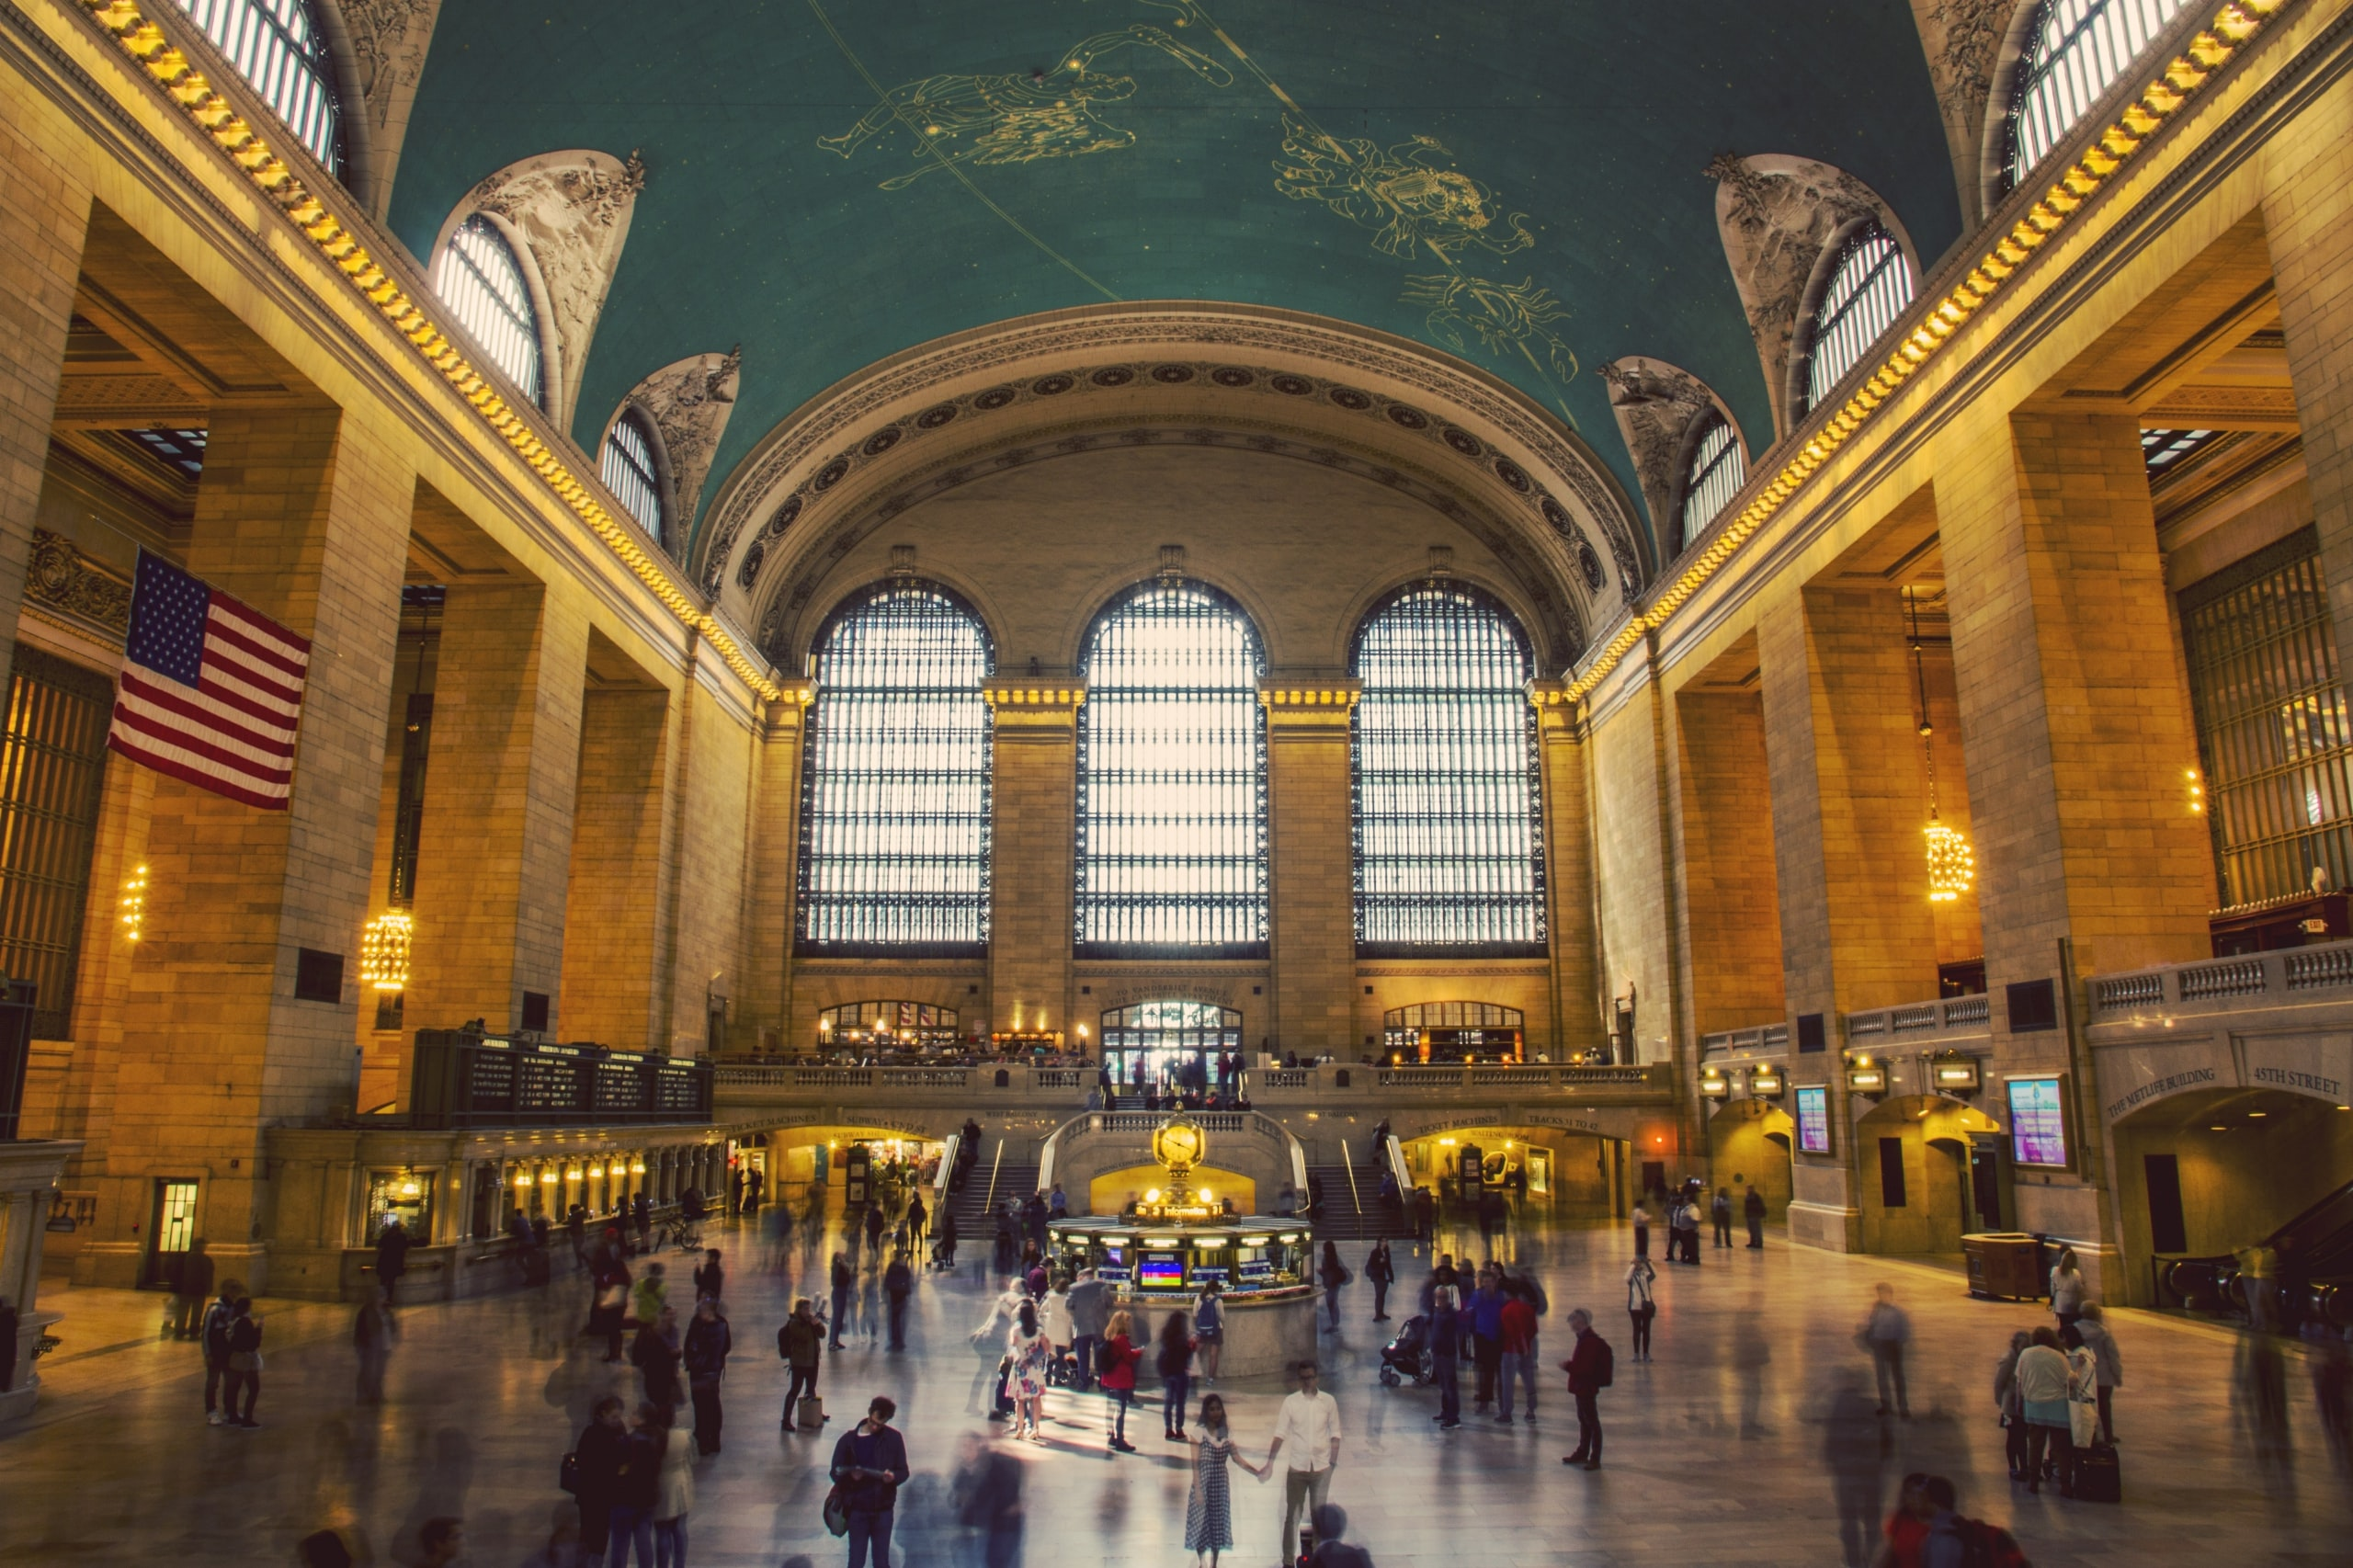 The interior of New York's Grand Central Station with an American flag on one of the walls